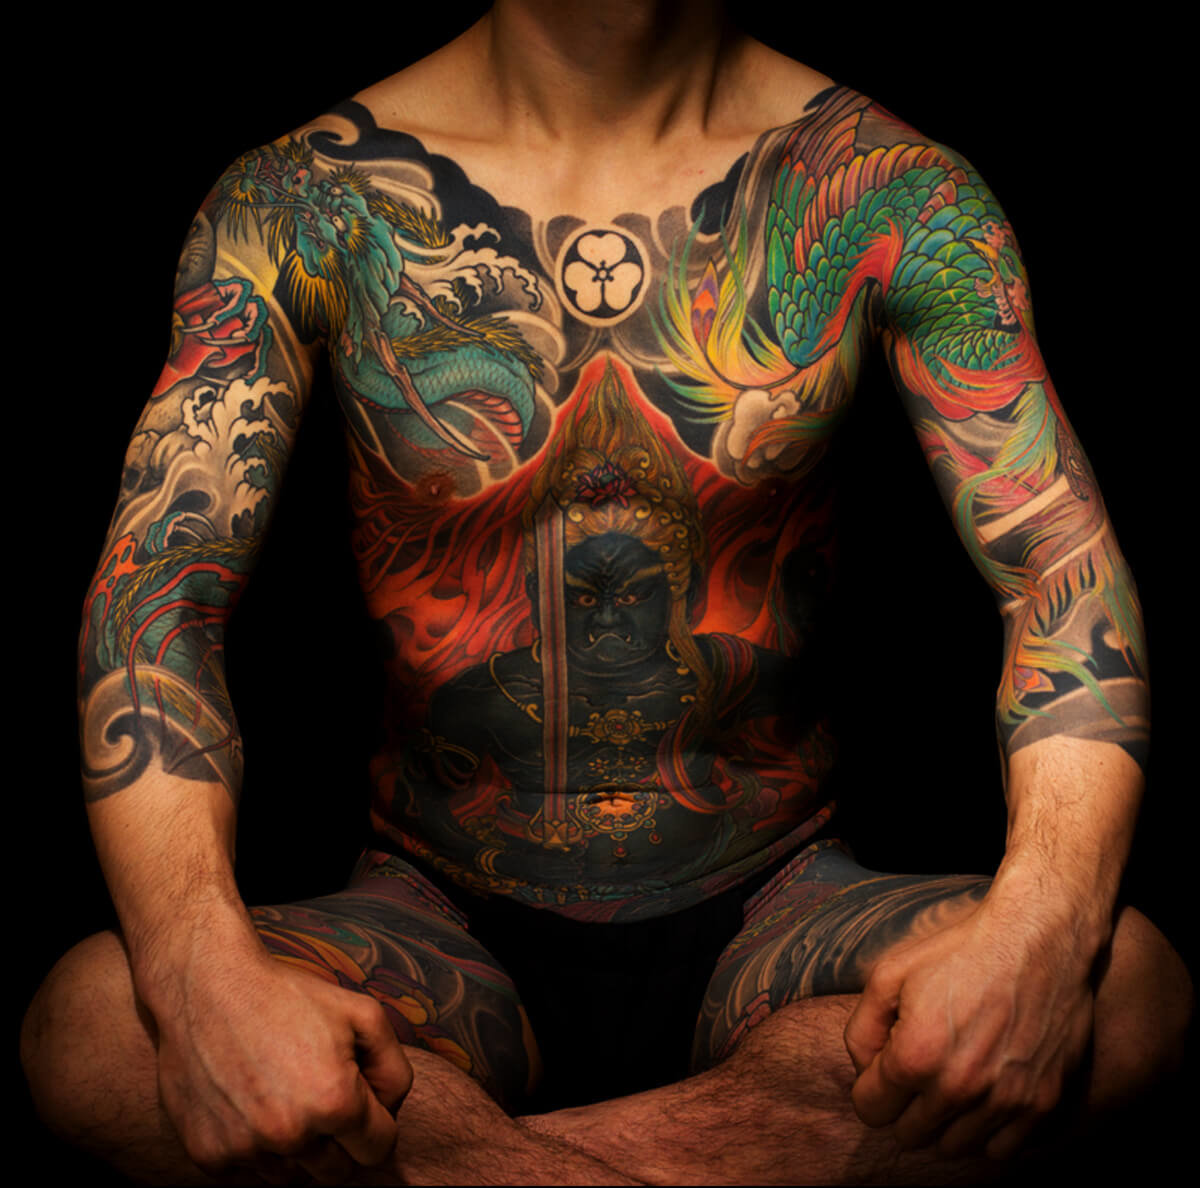 japanese tattoos irezumi meaning and history with pictures - HD1200×1188